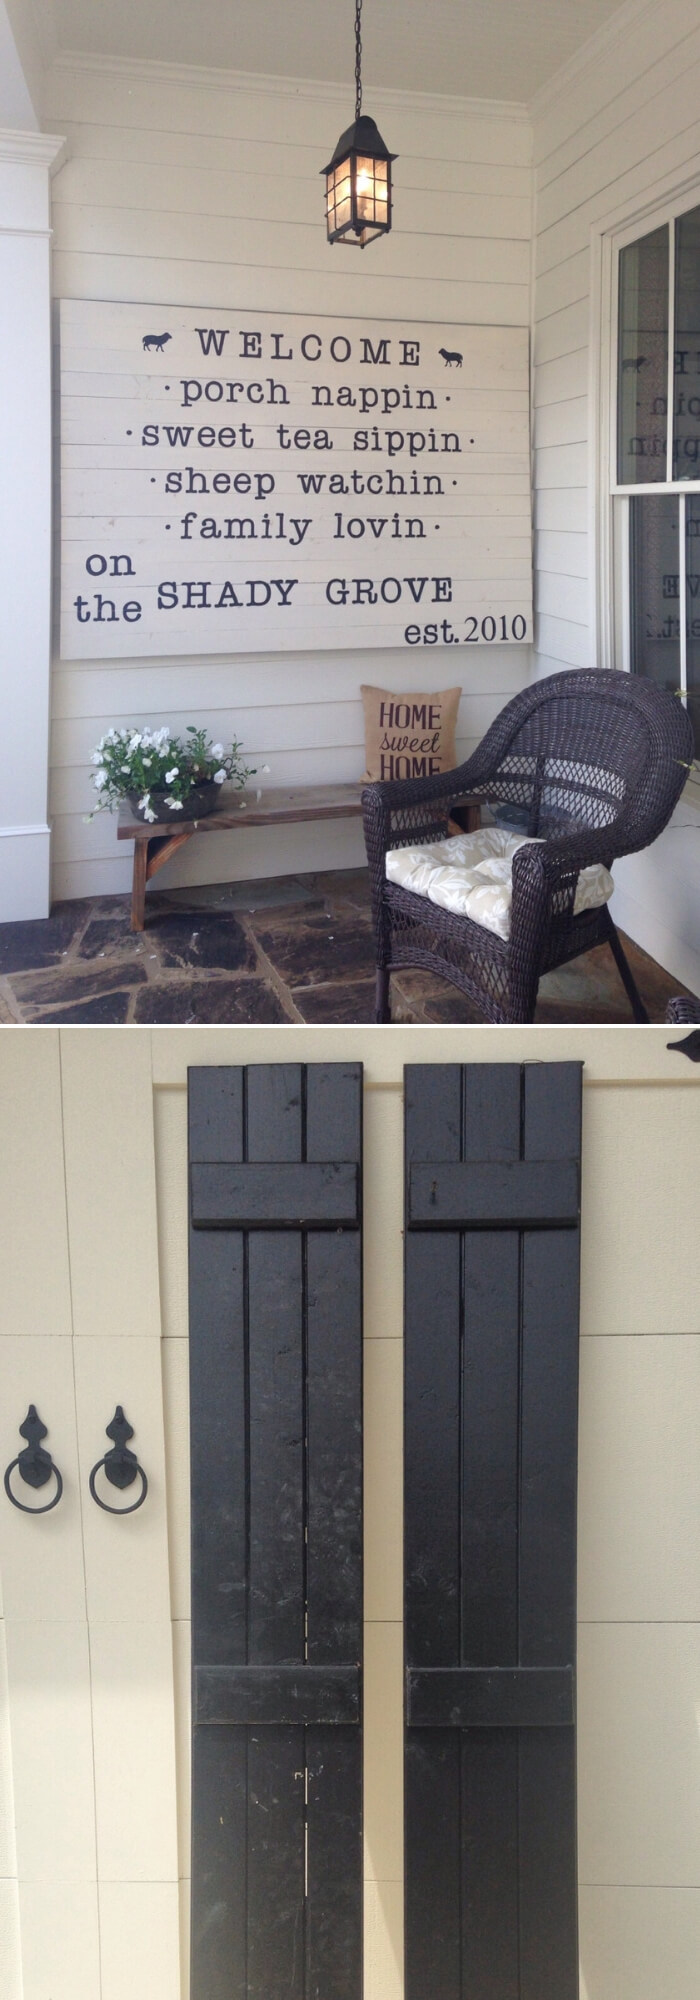 Welcome Cardboard from old shutters | Best Outdoor Wall Decor Ideas